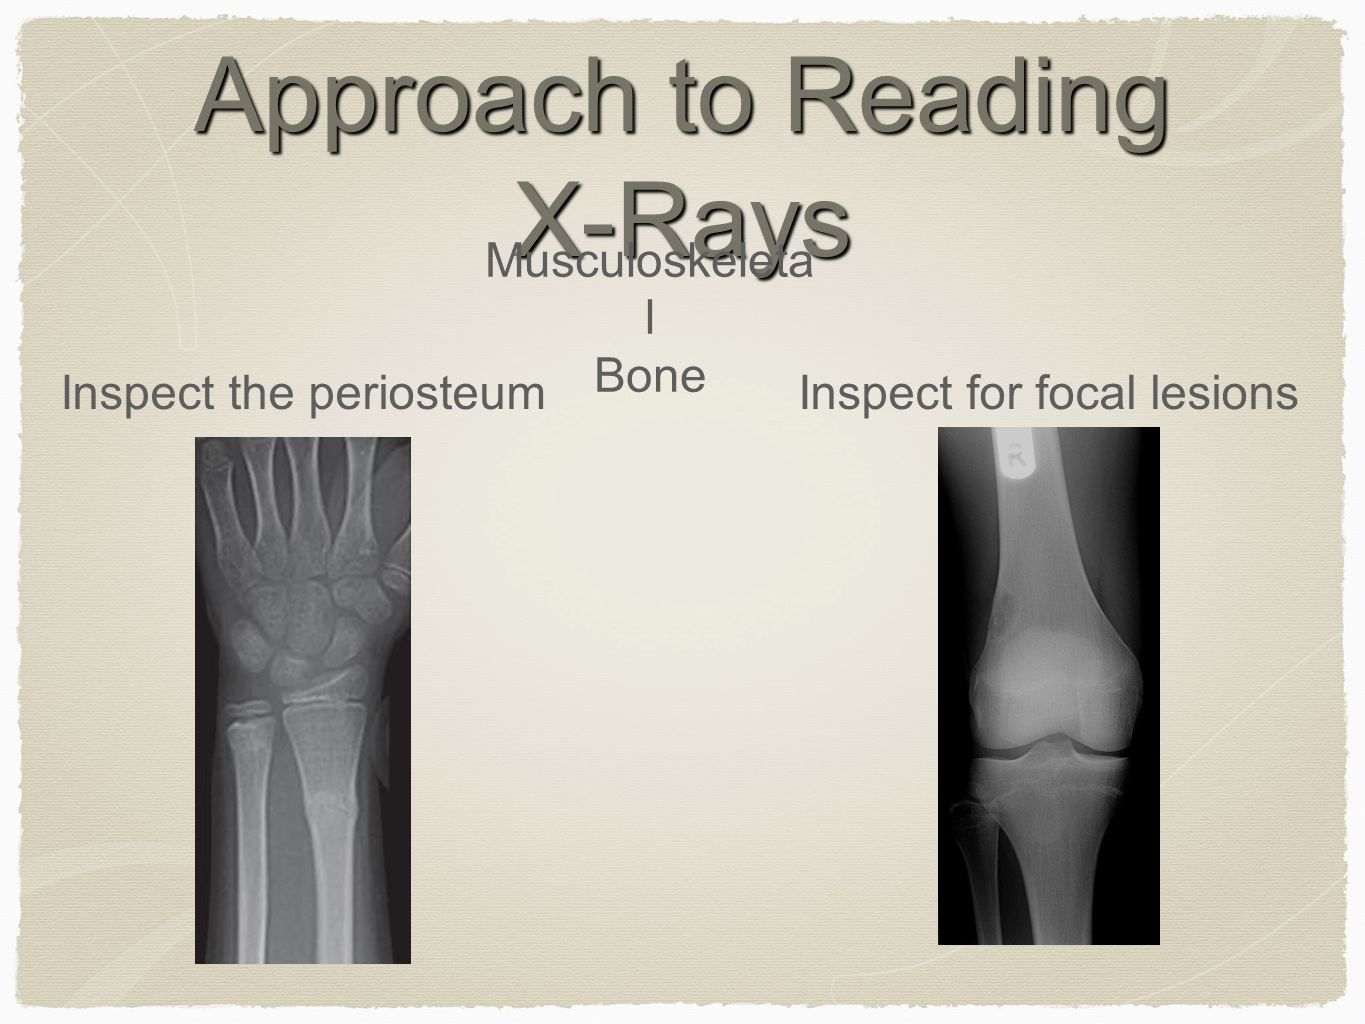 Approach to Reading X-Rays Musculoskeleta l Bone Inspect the periosteumInspect for focal lesions